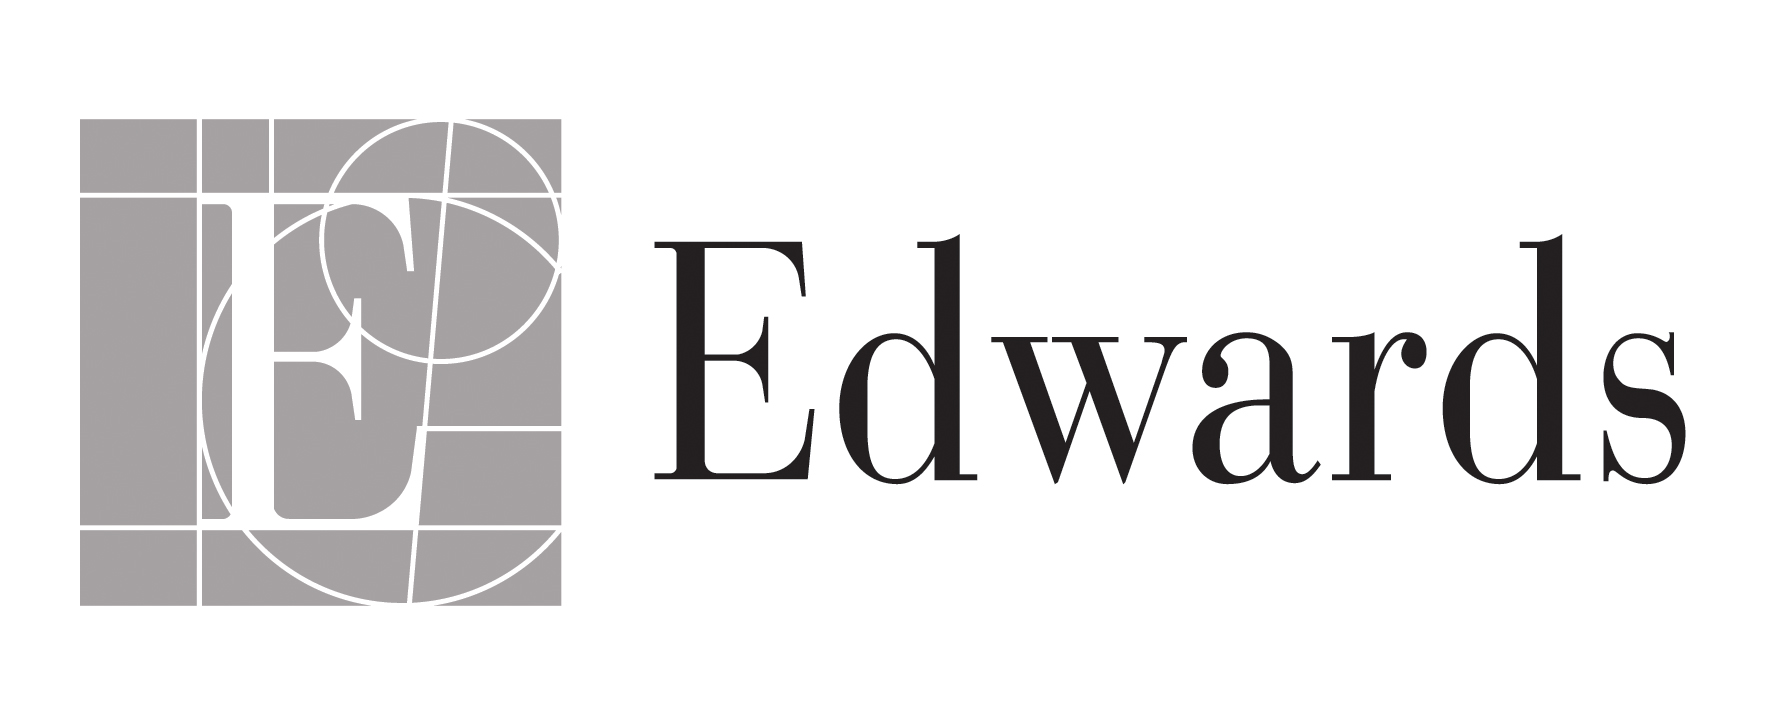 Edwards Lifescience